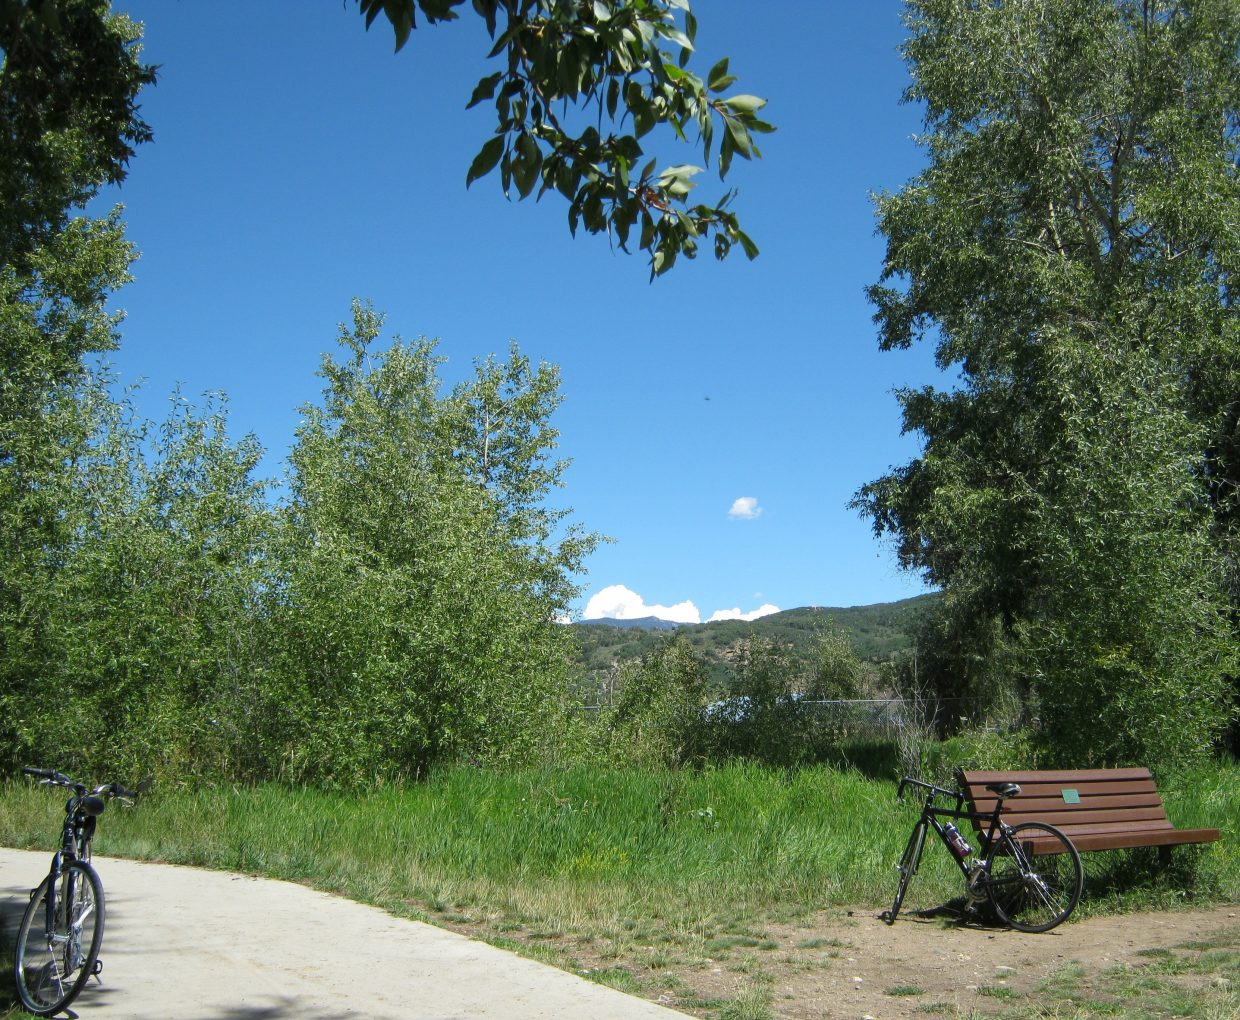 Lovely day for a bicycle ride. Submitted by: Janie Johnson-Russell